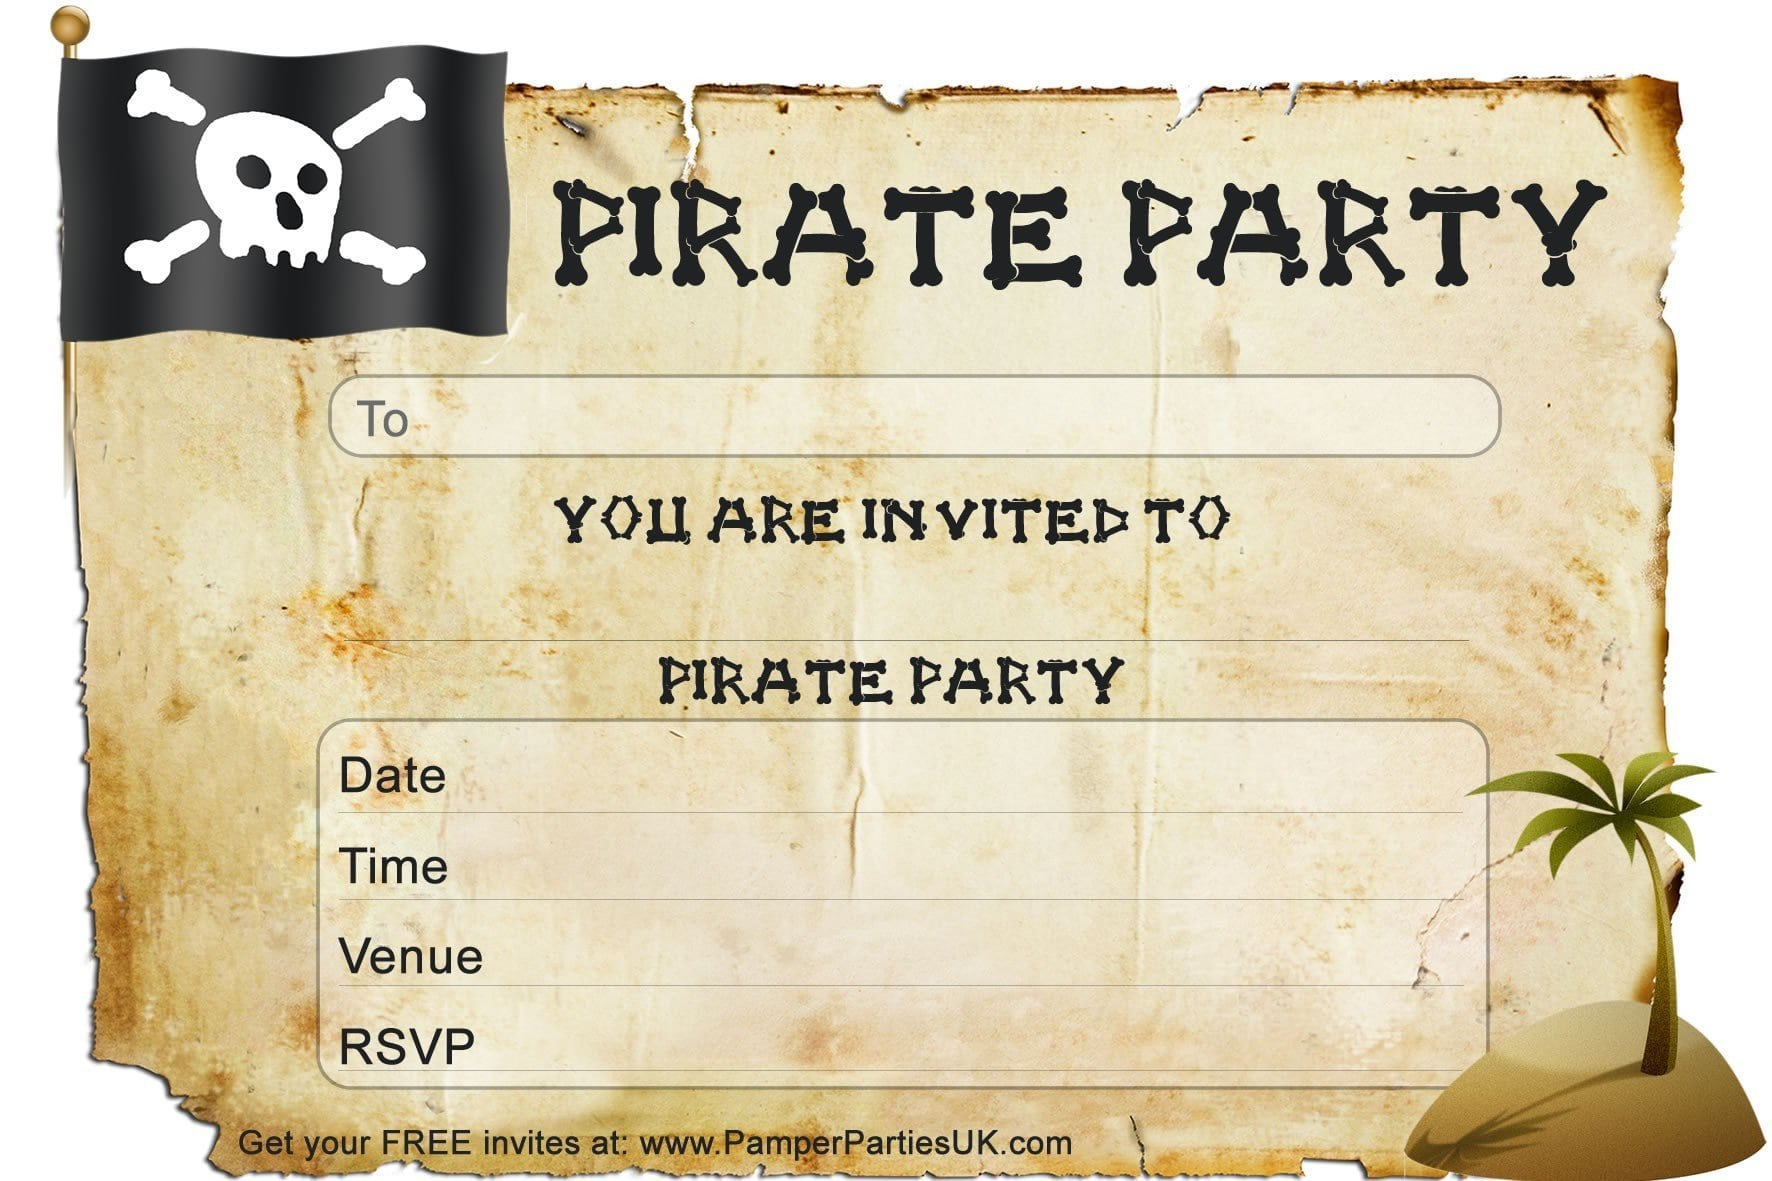 Pirate party invitation template posts related to pirate party invitations templates free filmwisefo